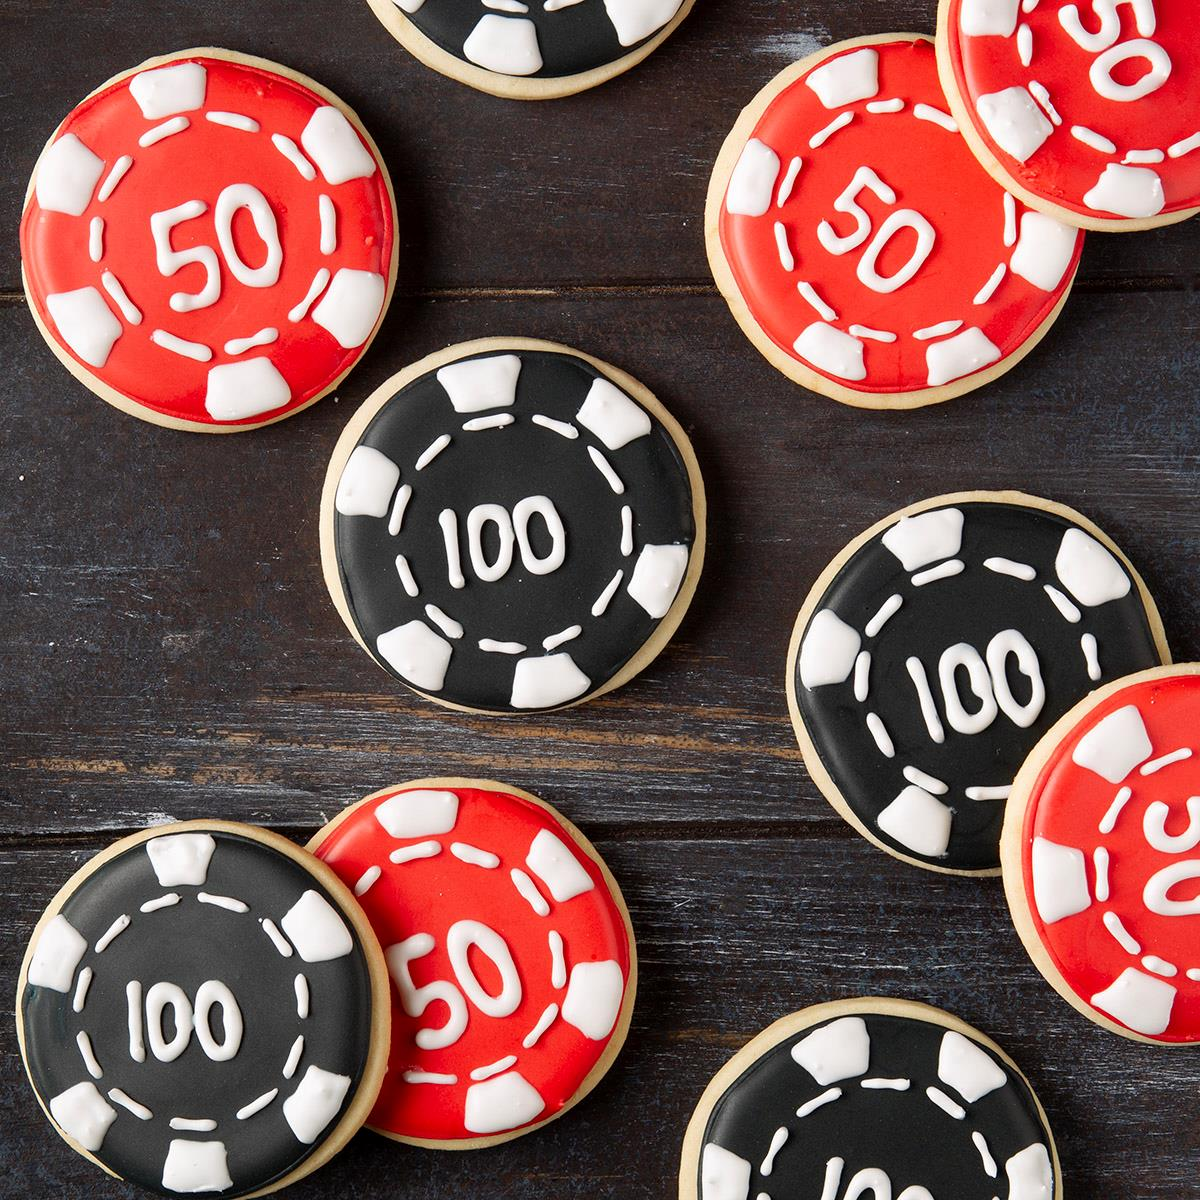 Playing Idn Poker Online Should Rely on the Best Services of the Site